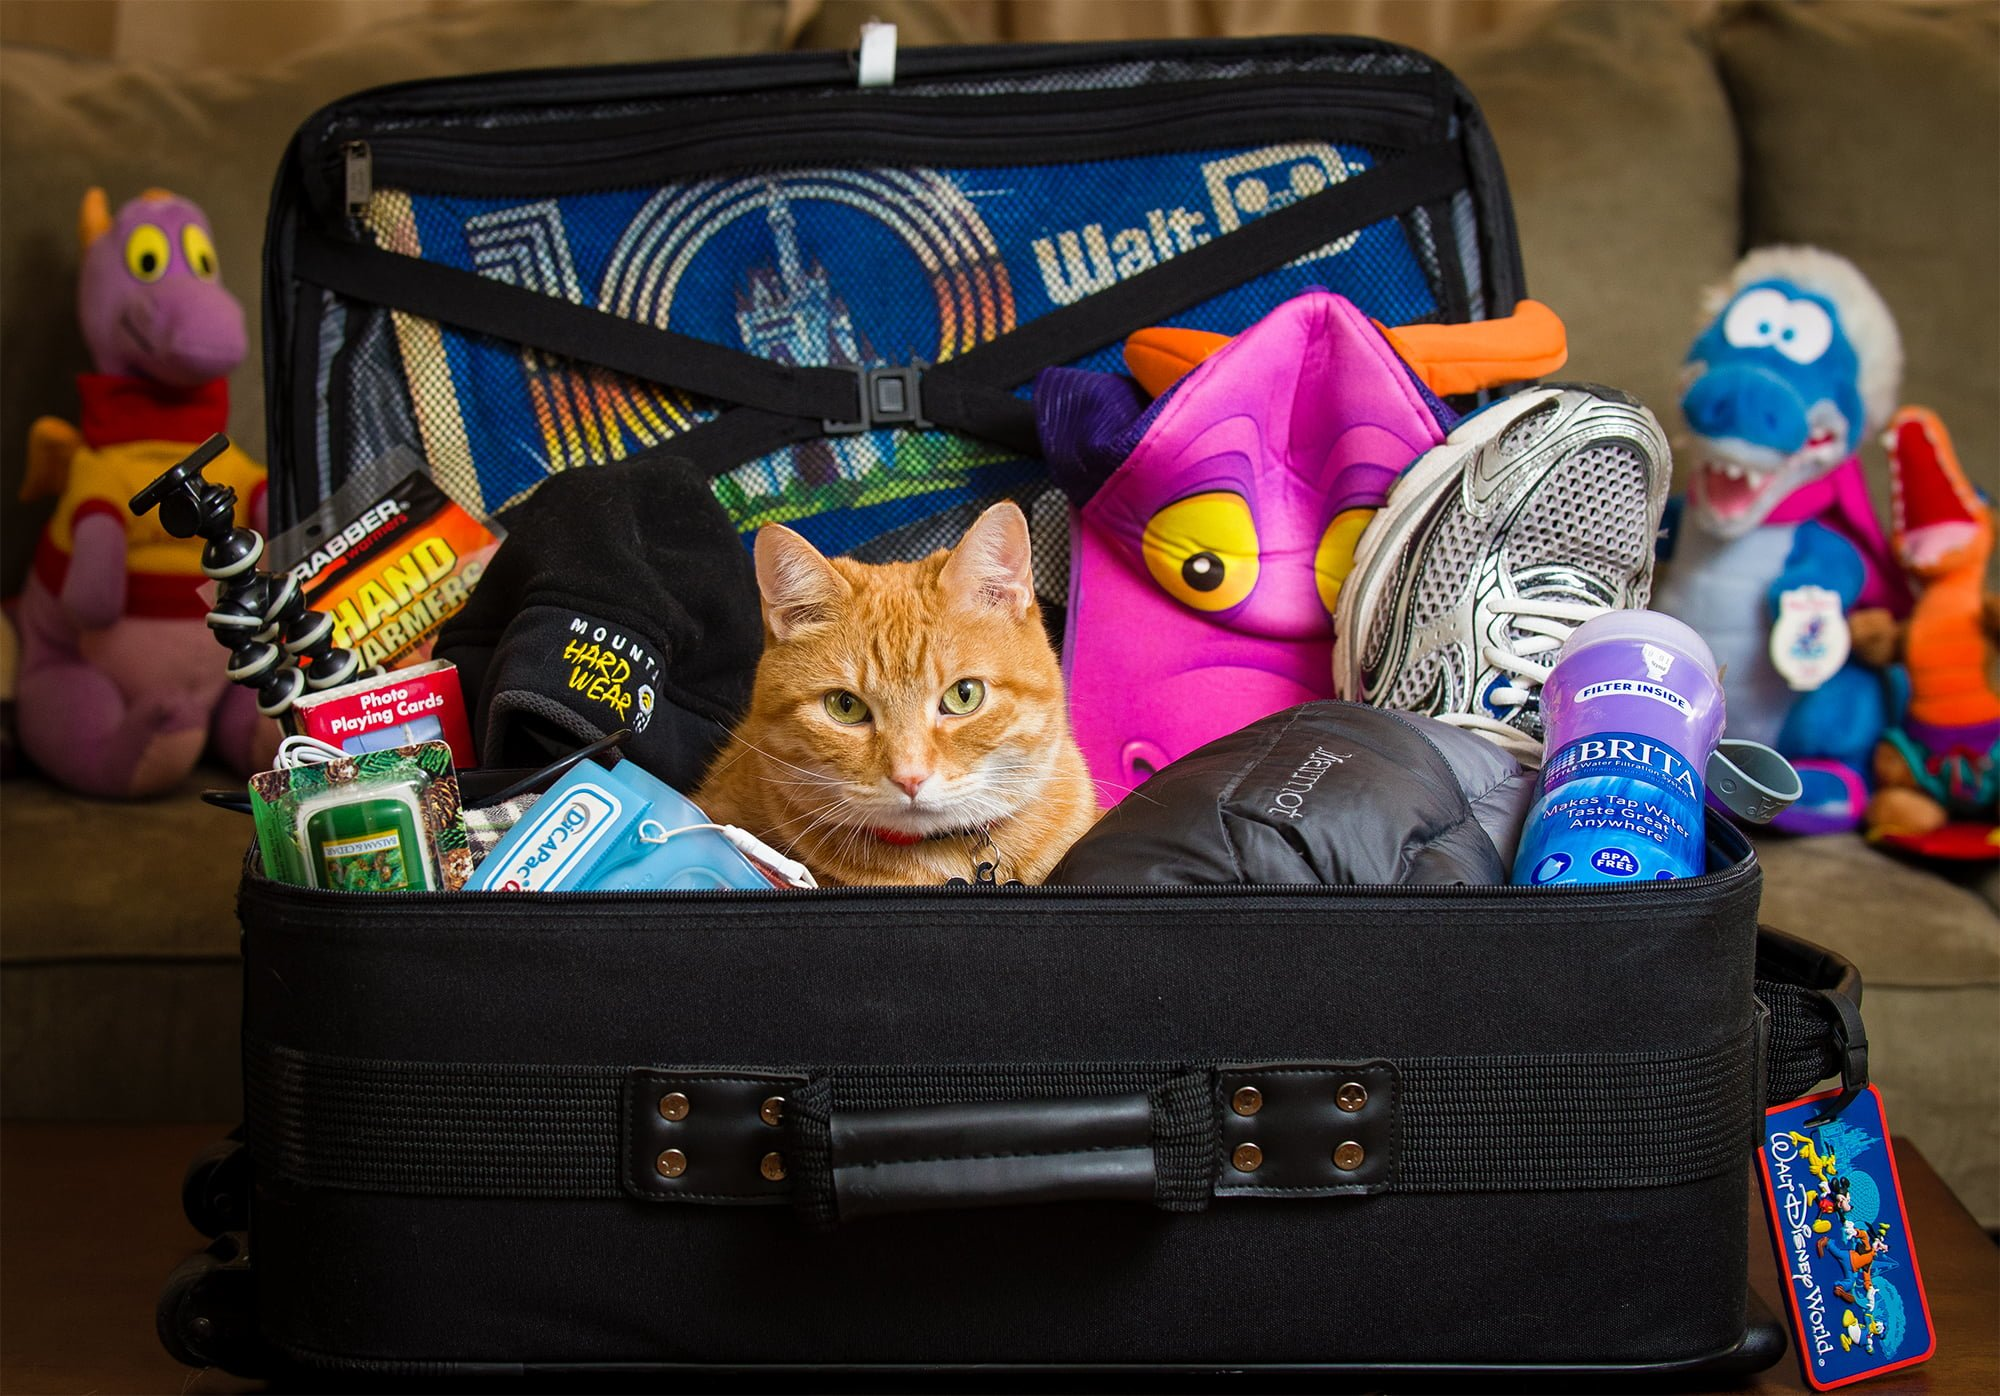 A great packing list for Disney with unique items you probably wouldn't consider!